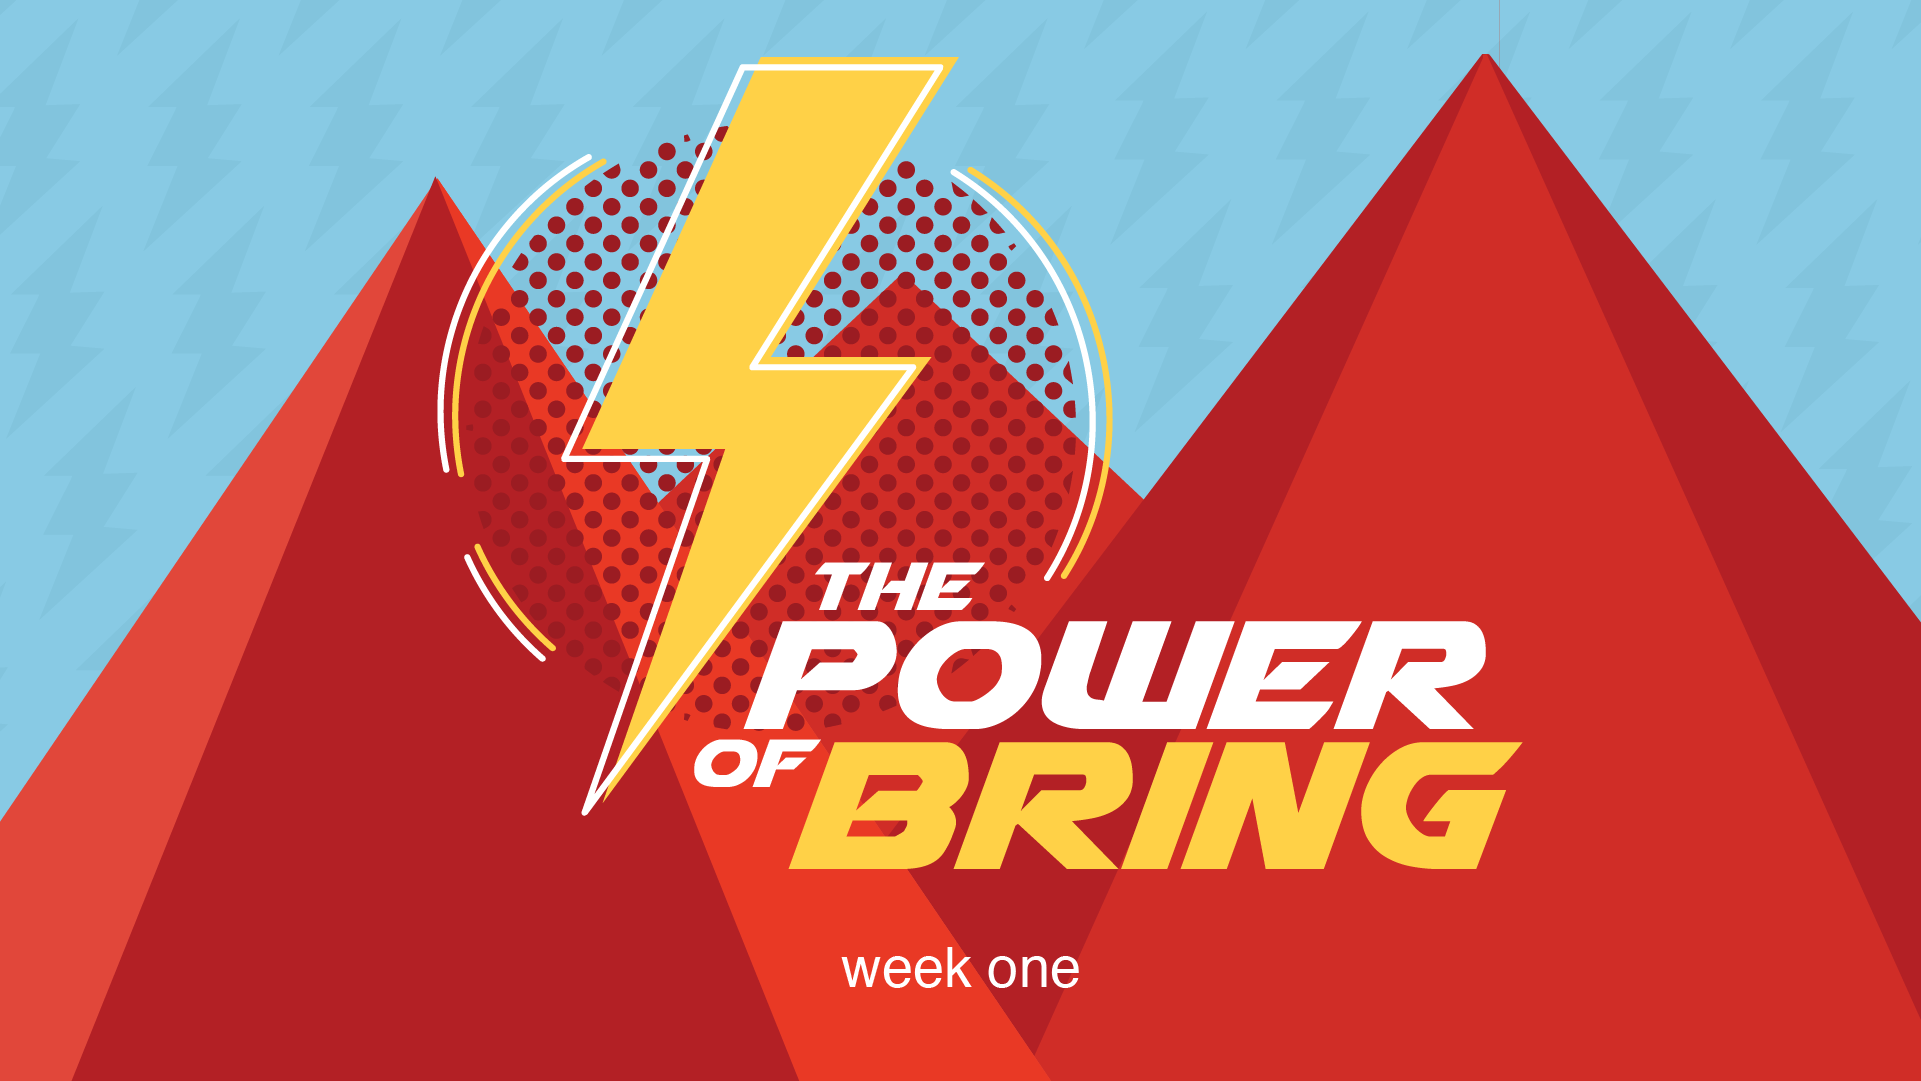 The Power of Bring - Week One